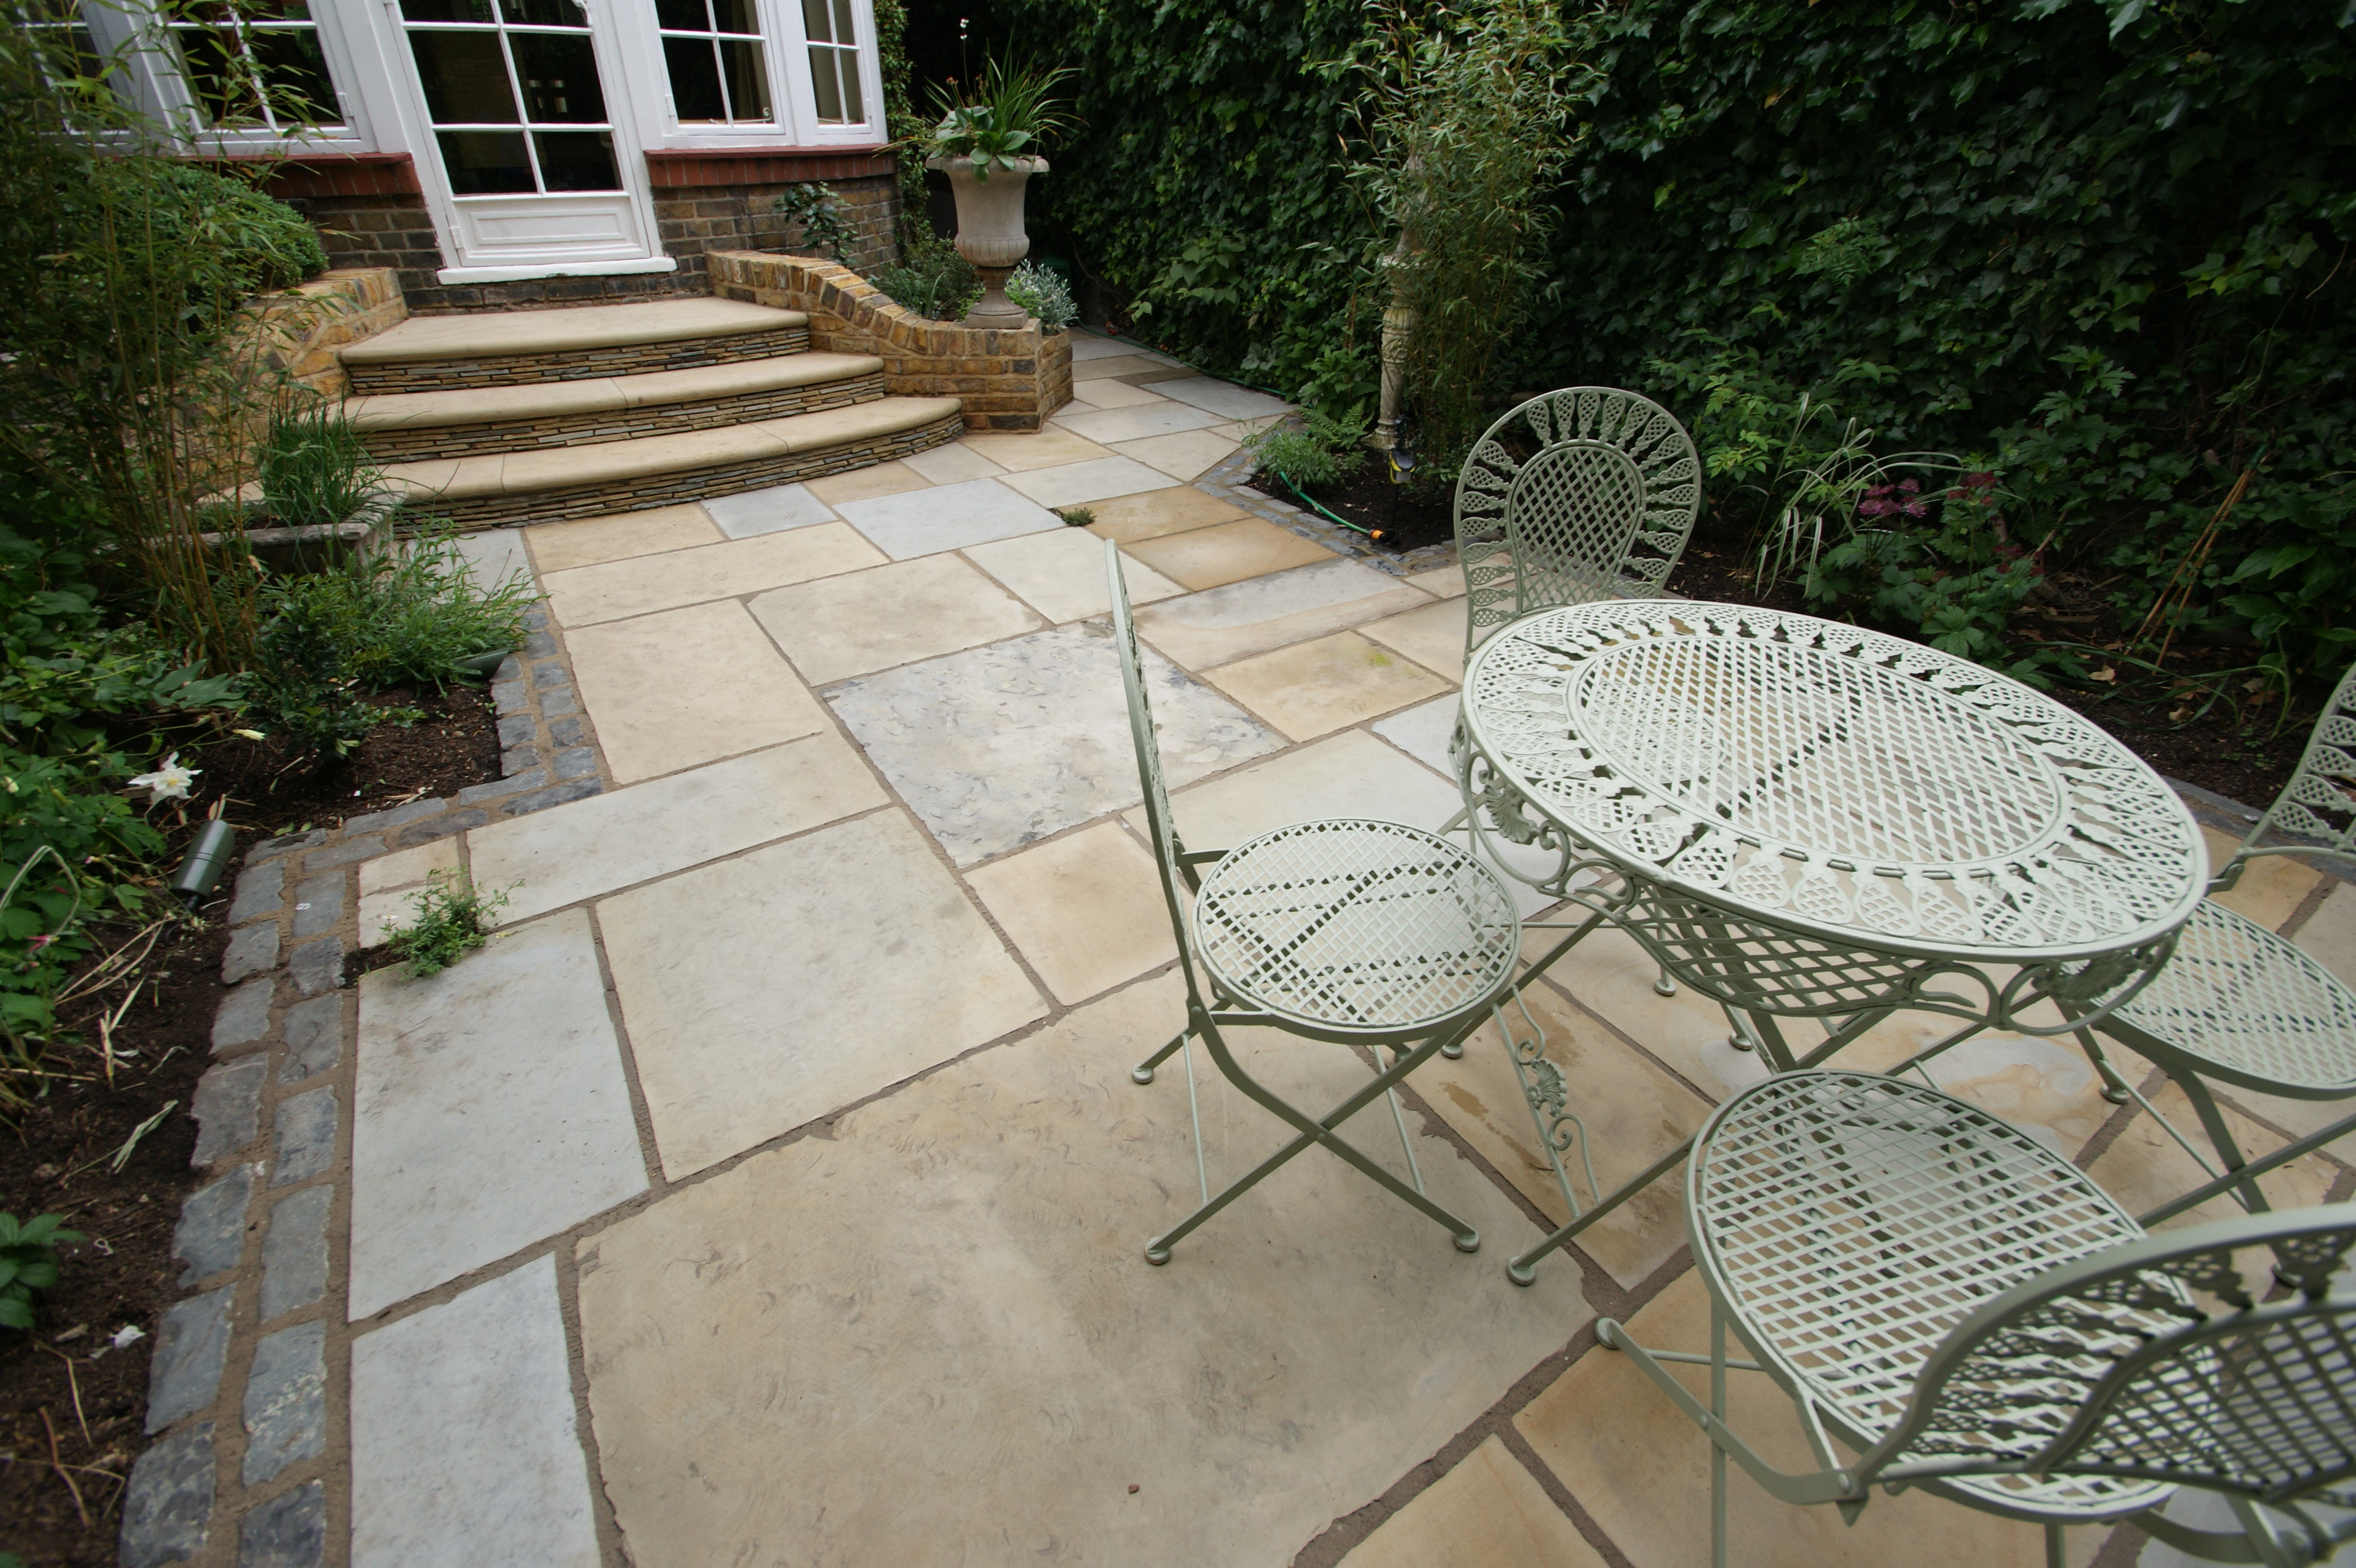 This is an image of reclaimed English yorkstone paving. https://stoneuk.com/products/reclaimed-second-face-english-yorkstone-paving/